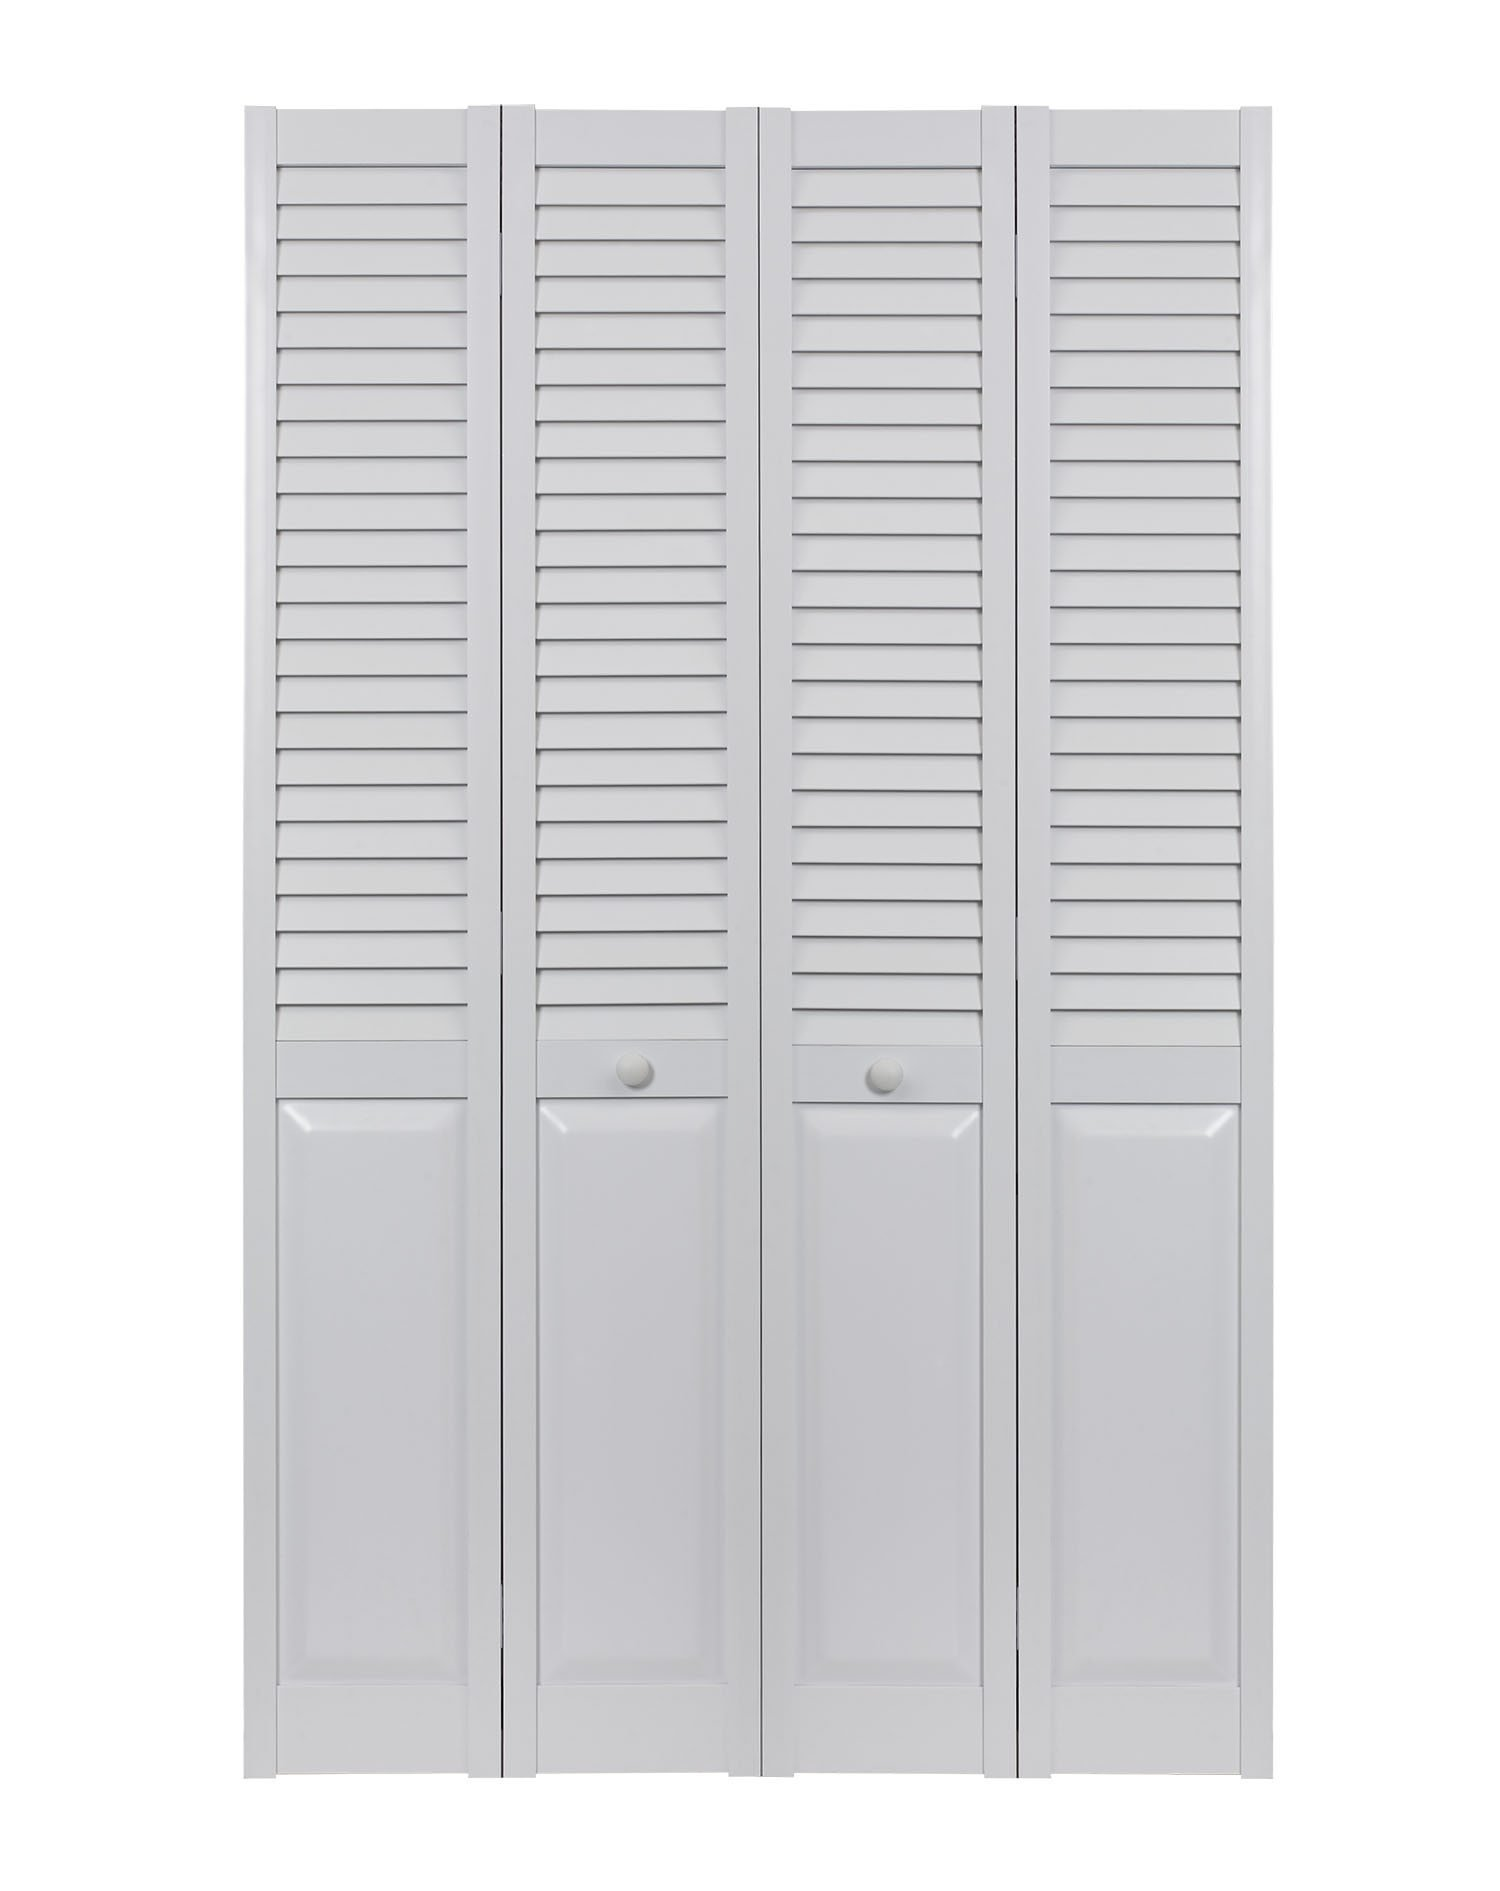 LTL Home Products SEALP48 Seabrooke PVC Louvered & Panel Interior Bifold Door (2 Pack), 78.625'' x 23.5'', White by LTL Home Products